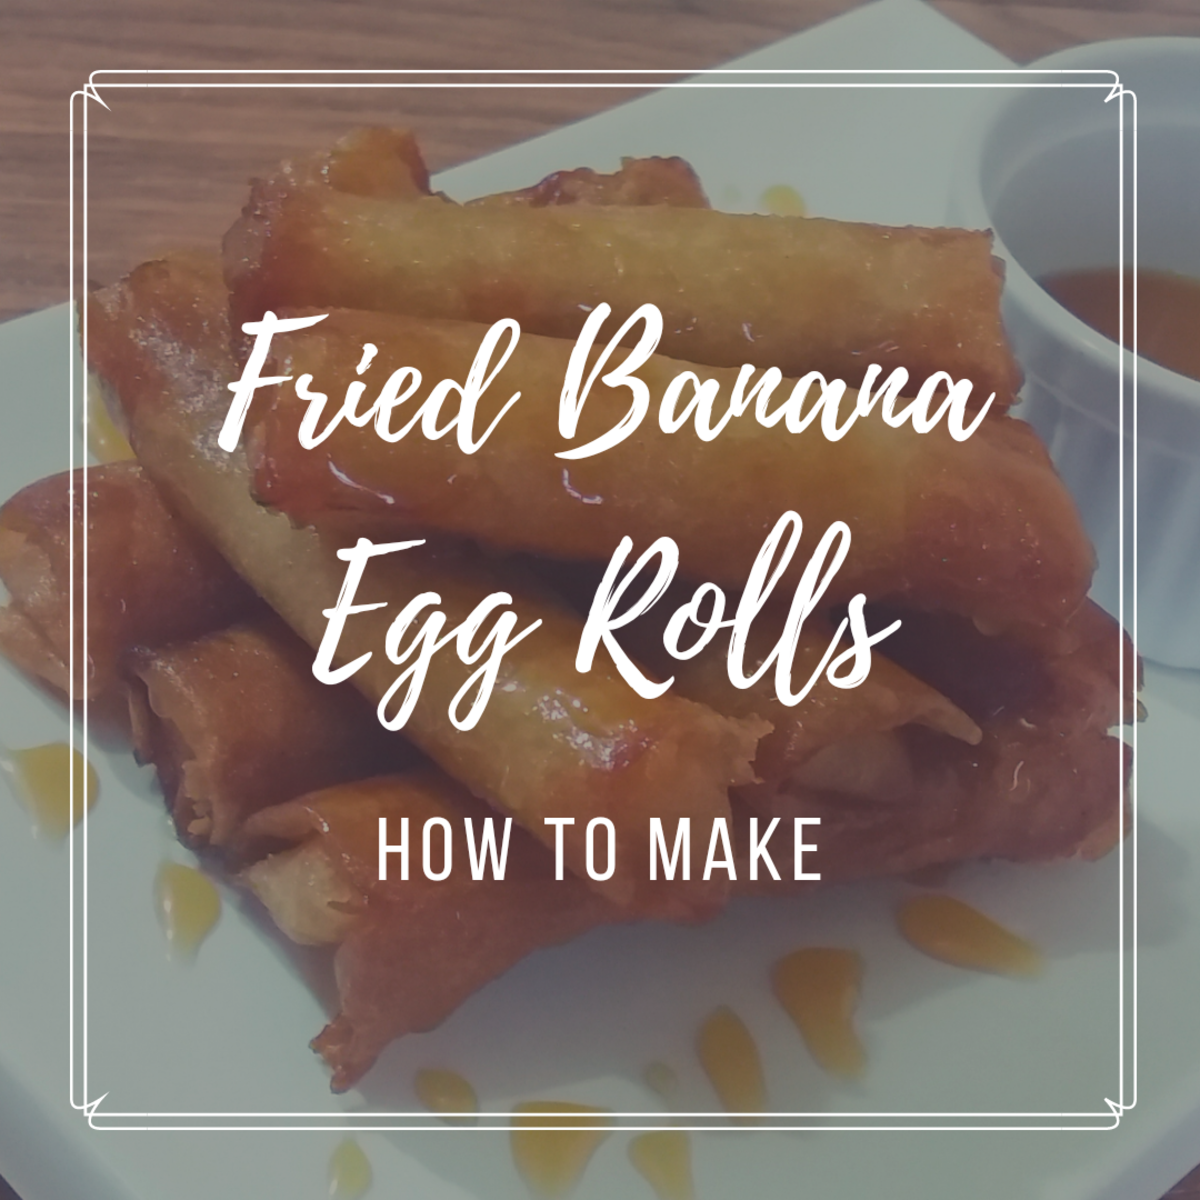 How to Make Fried Banana Egg Rolls (Turon): A Filipino-Inspired Snack